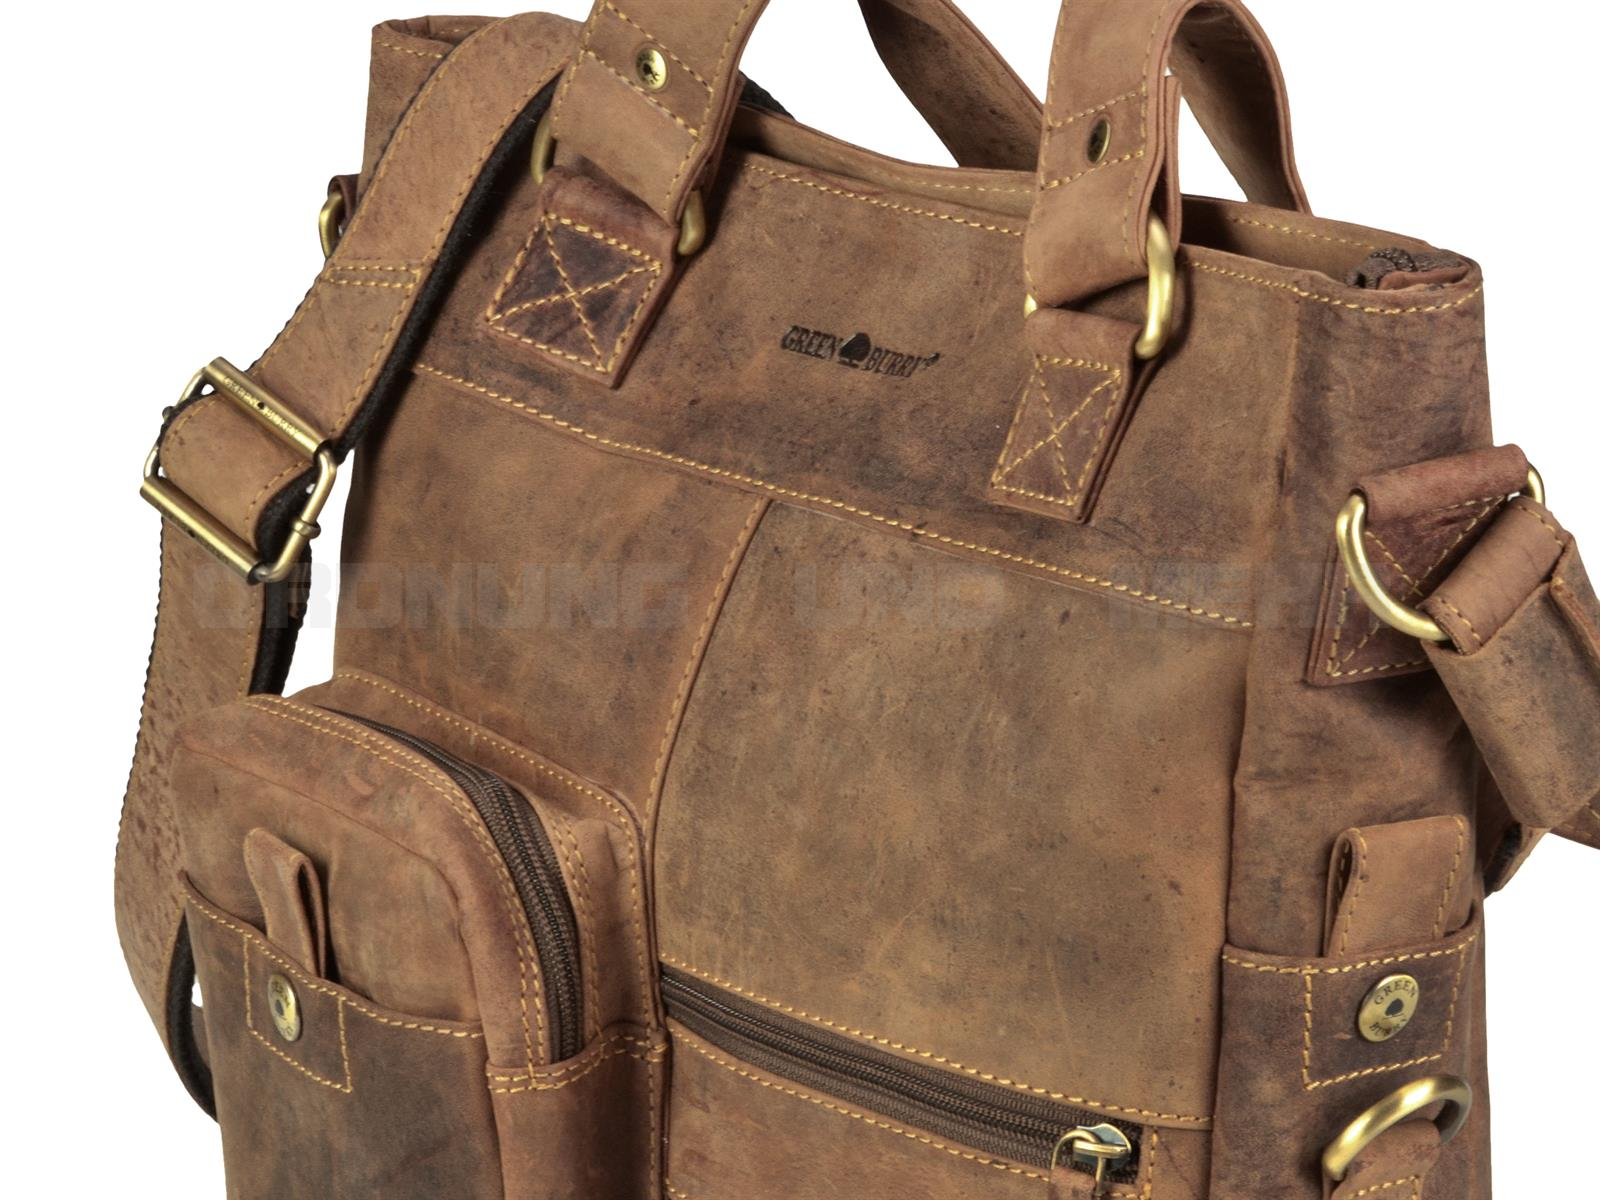 Greenburry Ledertasche in antikbraun mit dem einmaligen Vintage Look